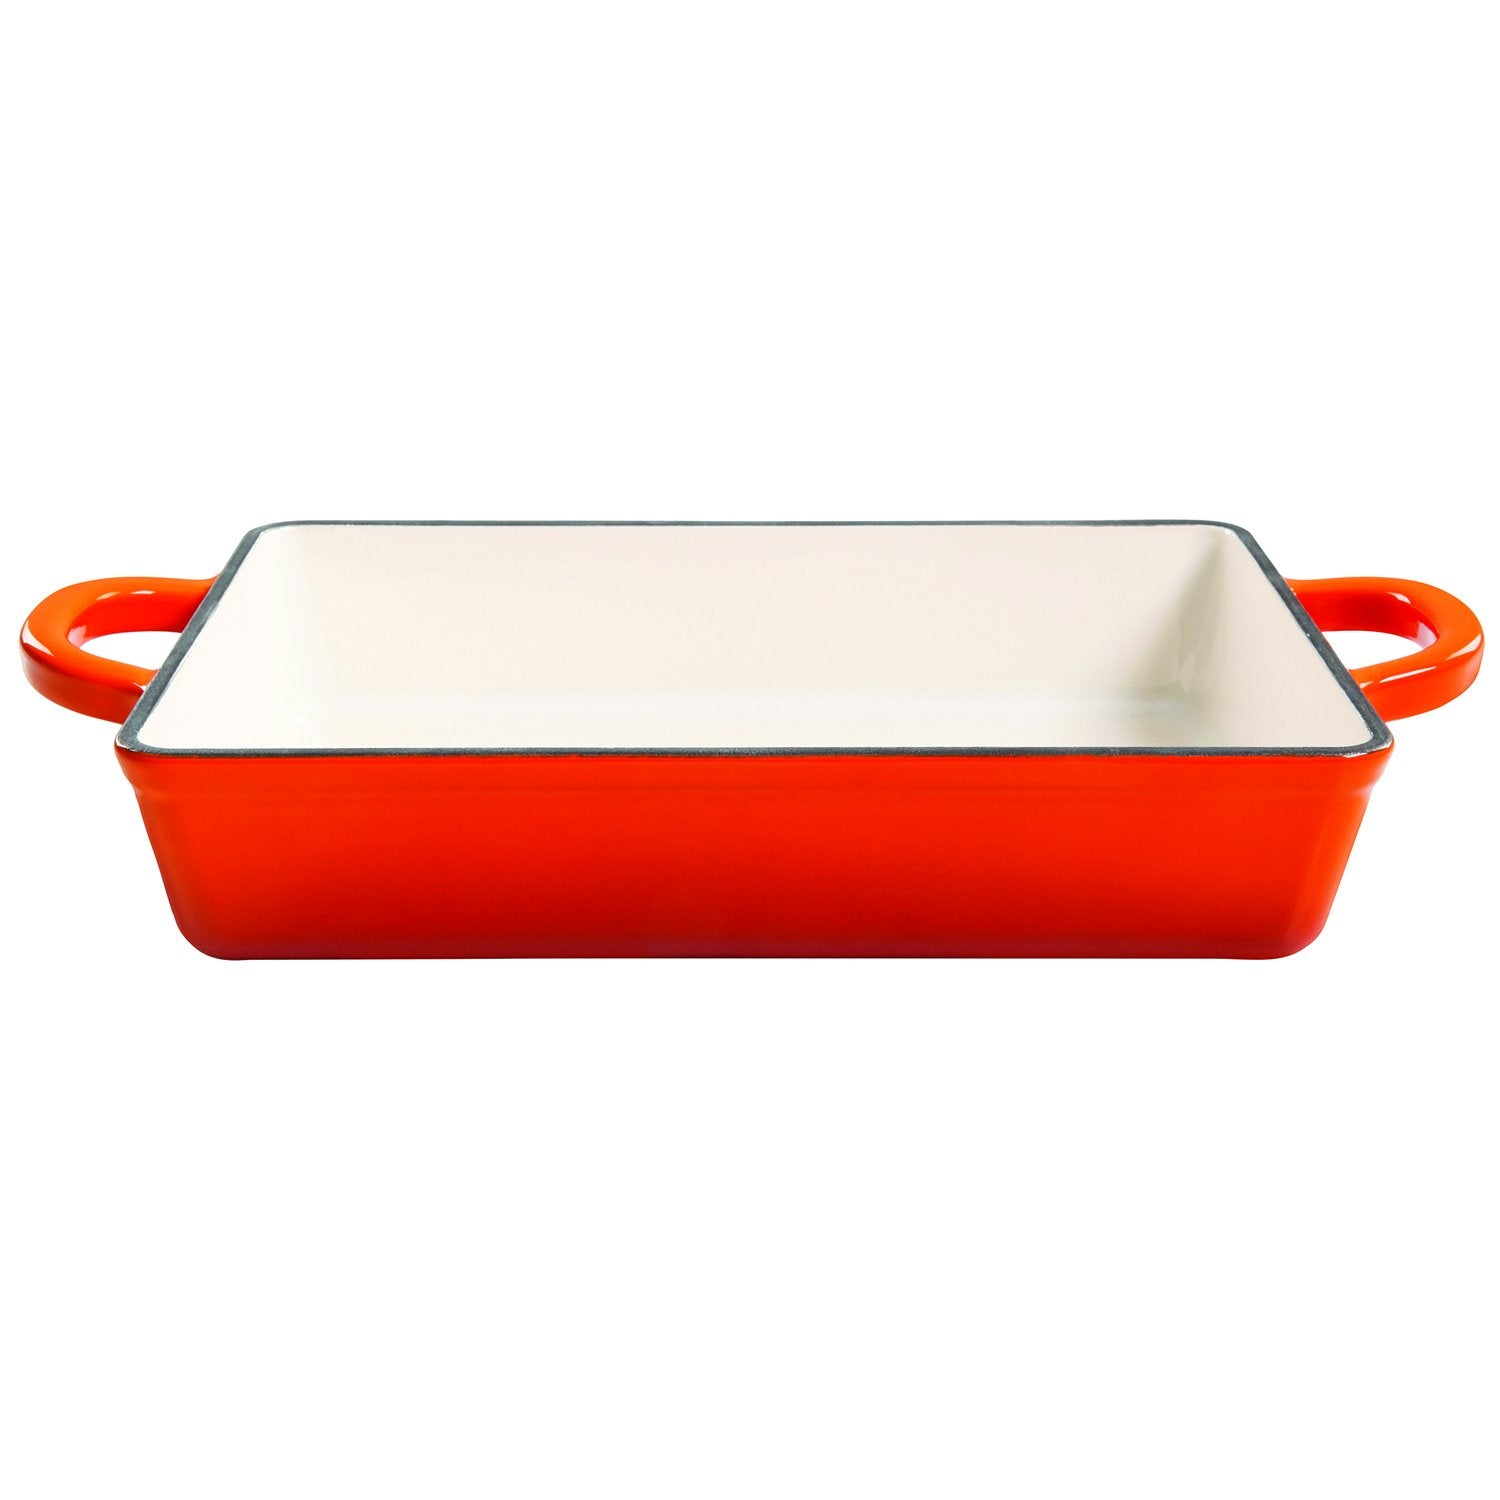 Crock Pot 112009.01 Artisan 13 Inch Enameled Cast Iron Lasagna Pan, Sunset Orange